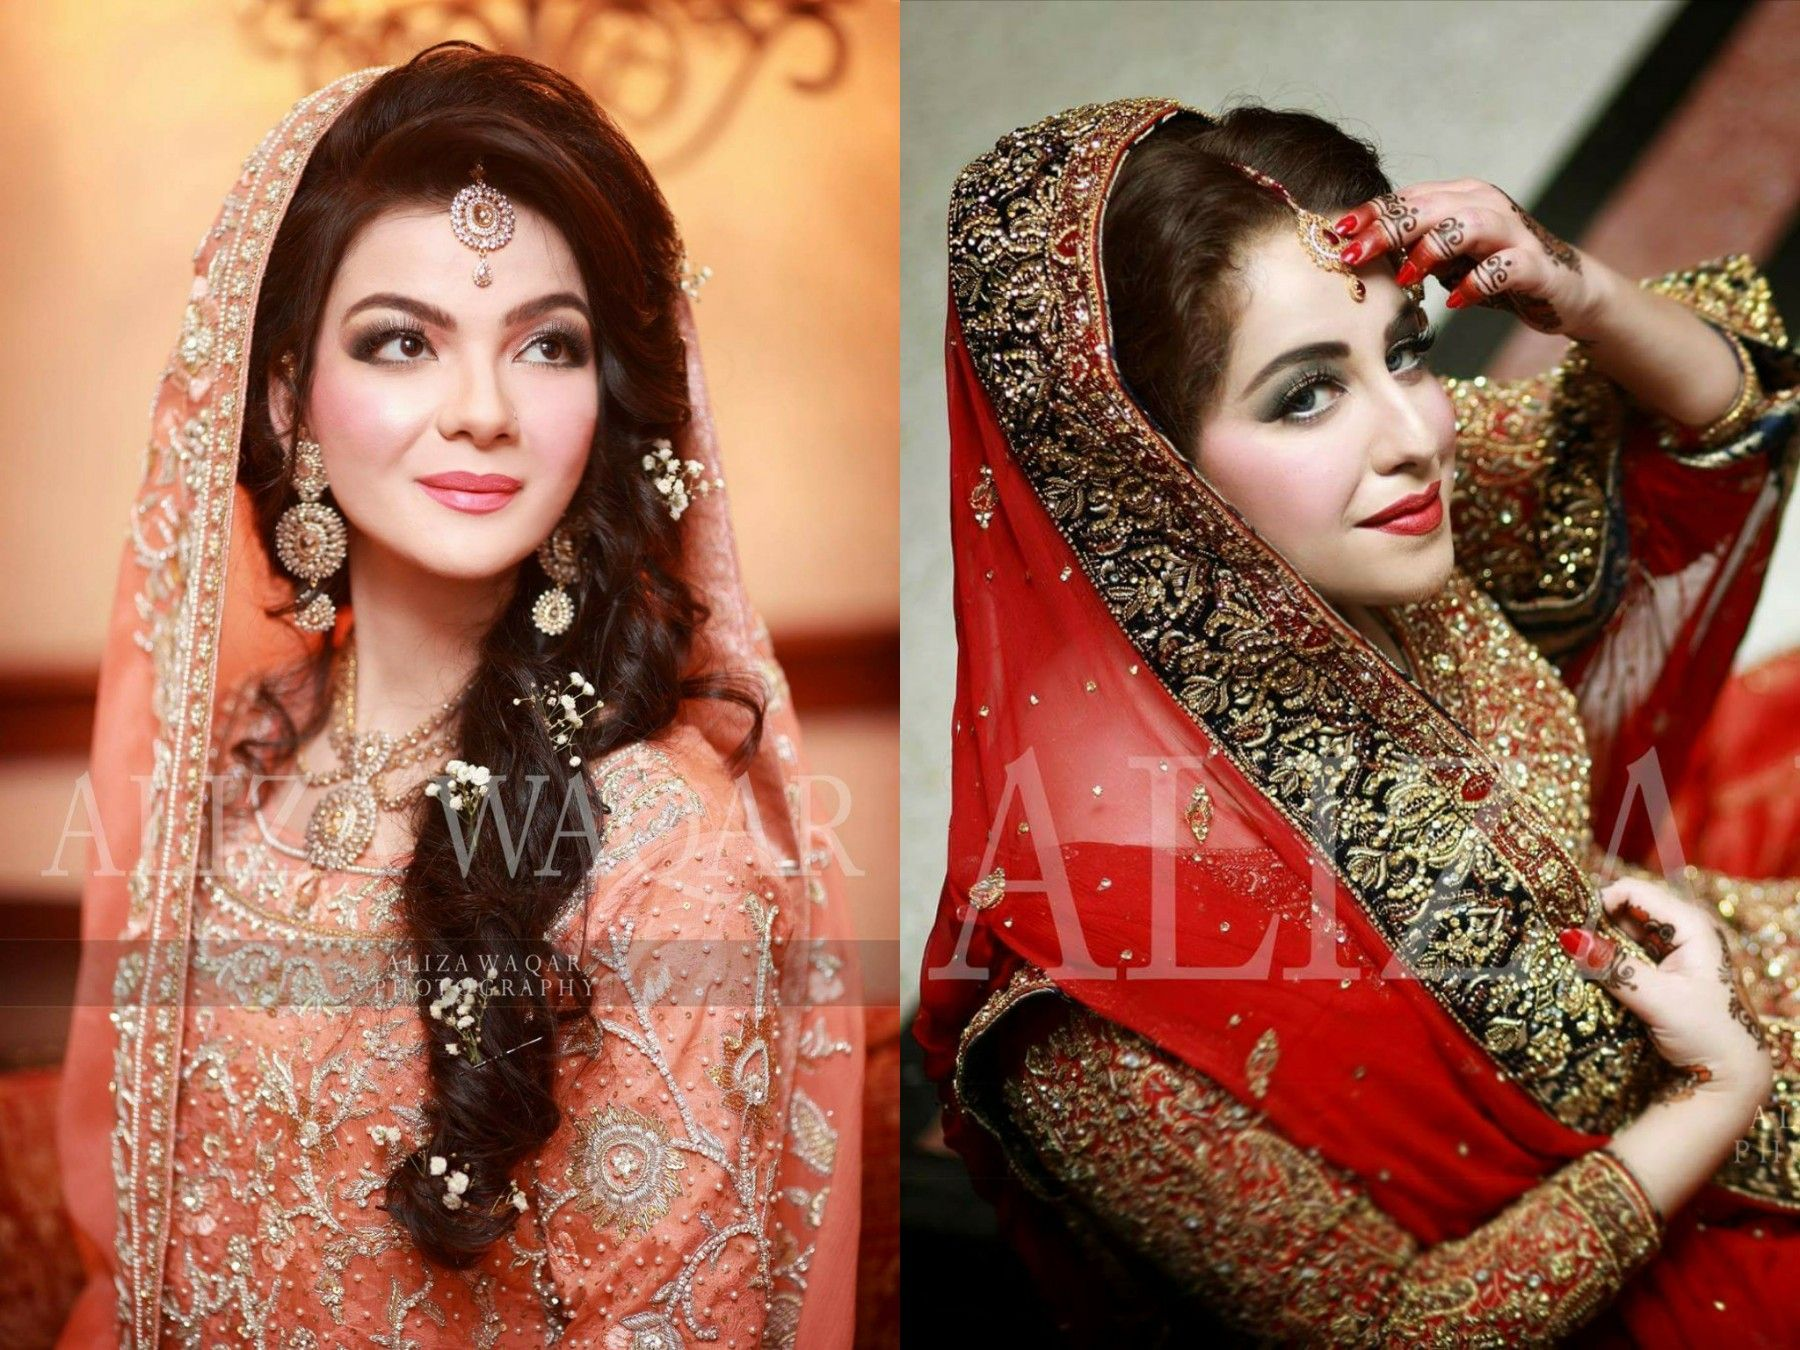 photographyaliza waqar | wedding photography of barat brides